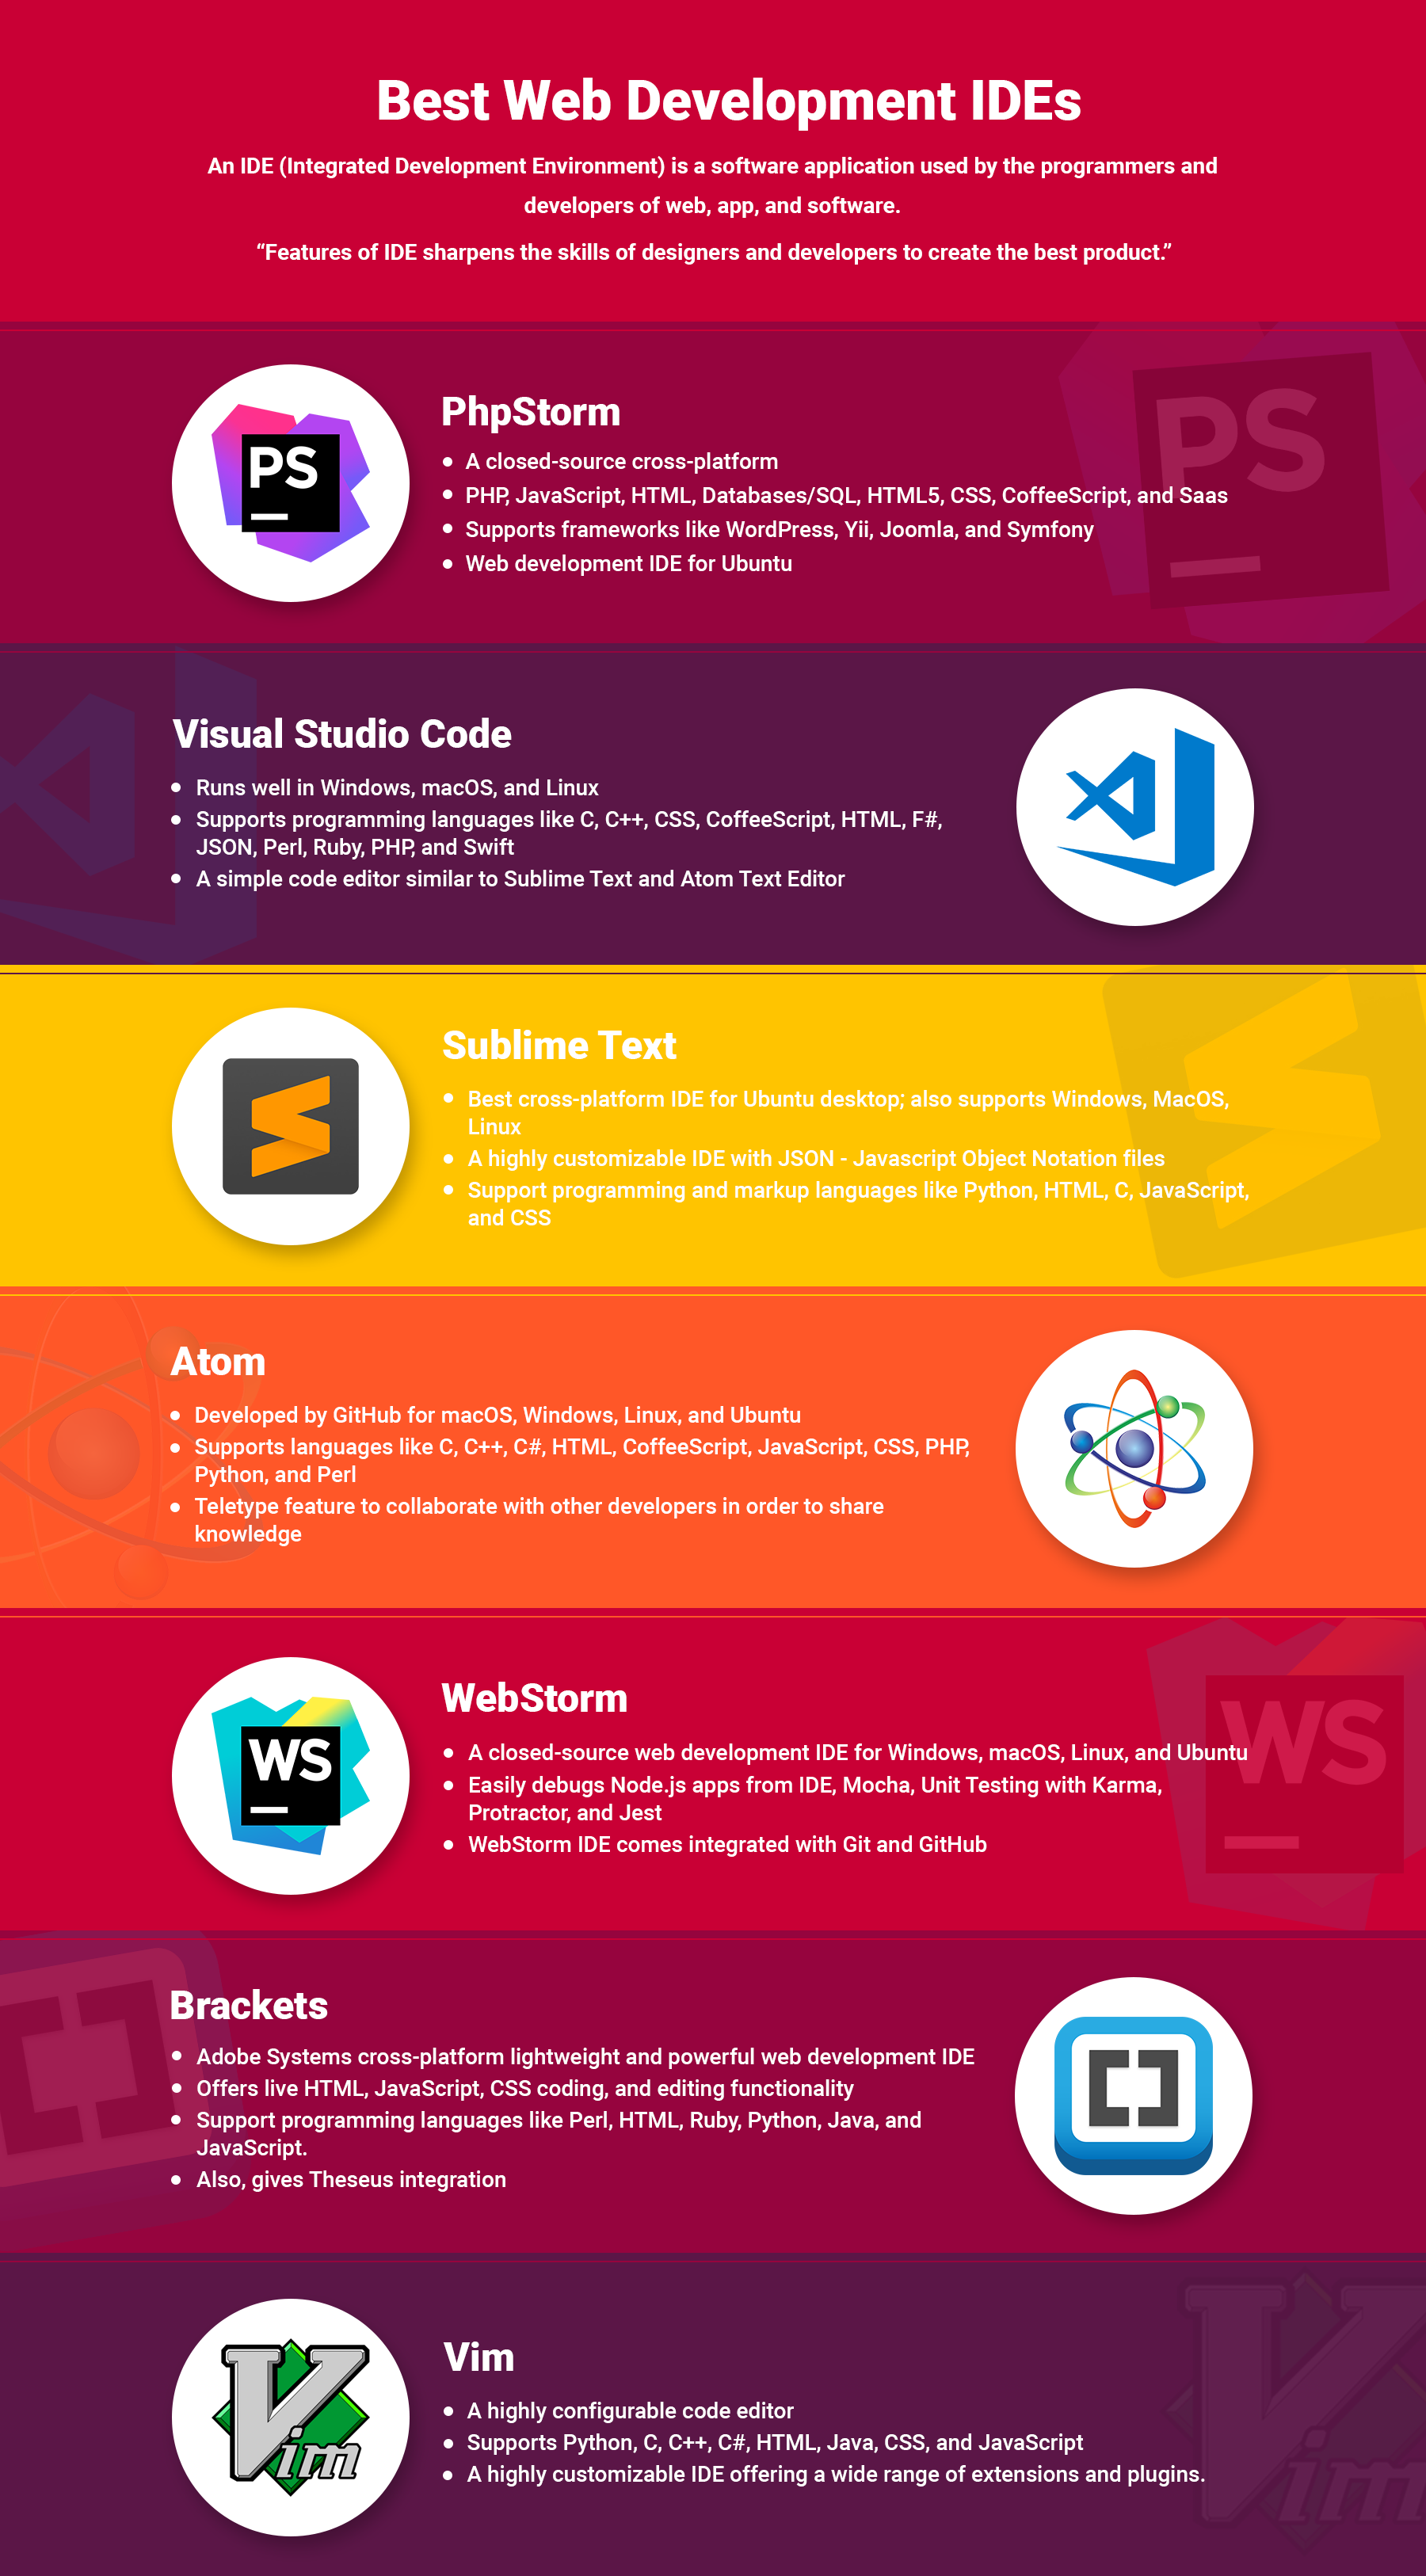 Best Web Development IDEs | CMS Website Services